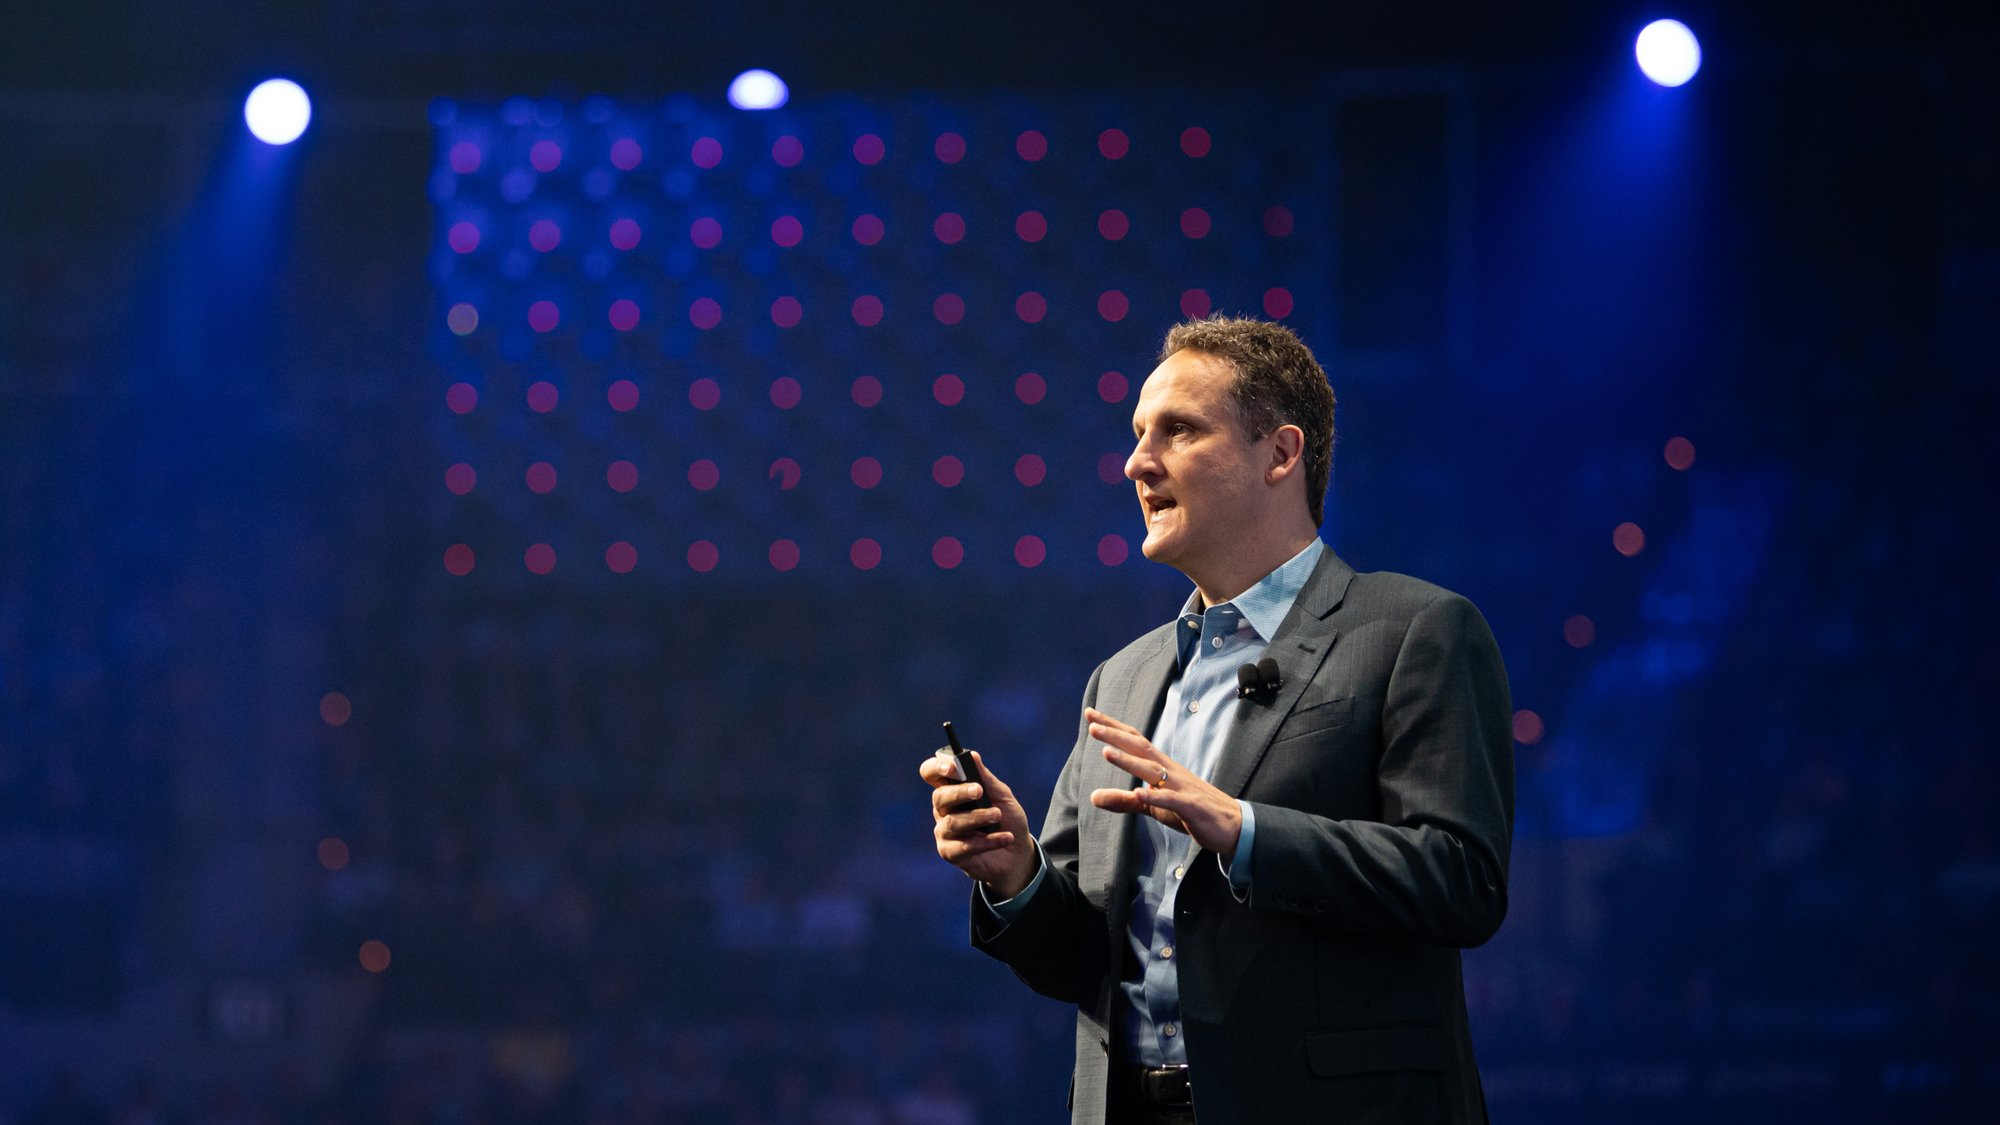 Tableau CEO Adam Selipsky on stage at TC19